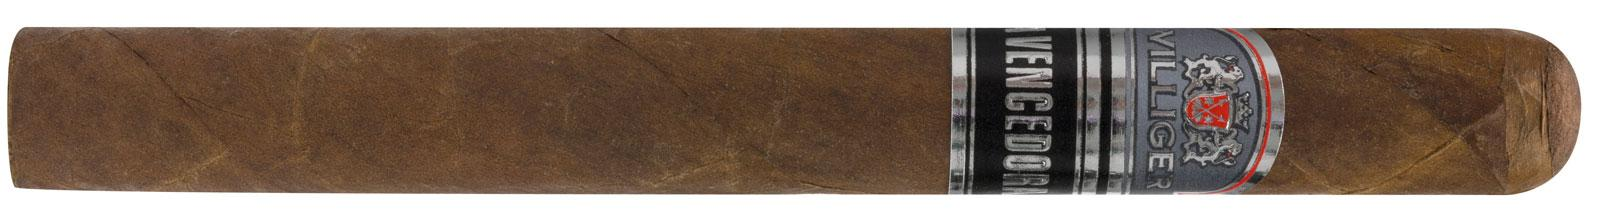 La Vencedora is a Nicaraguan puro that wears a dark Habano Oscuro cover leaf.